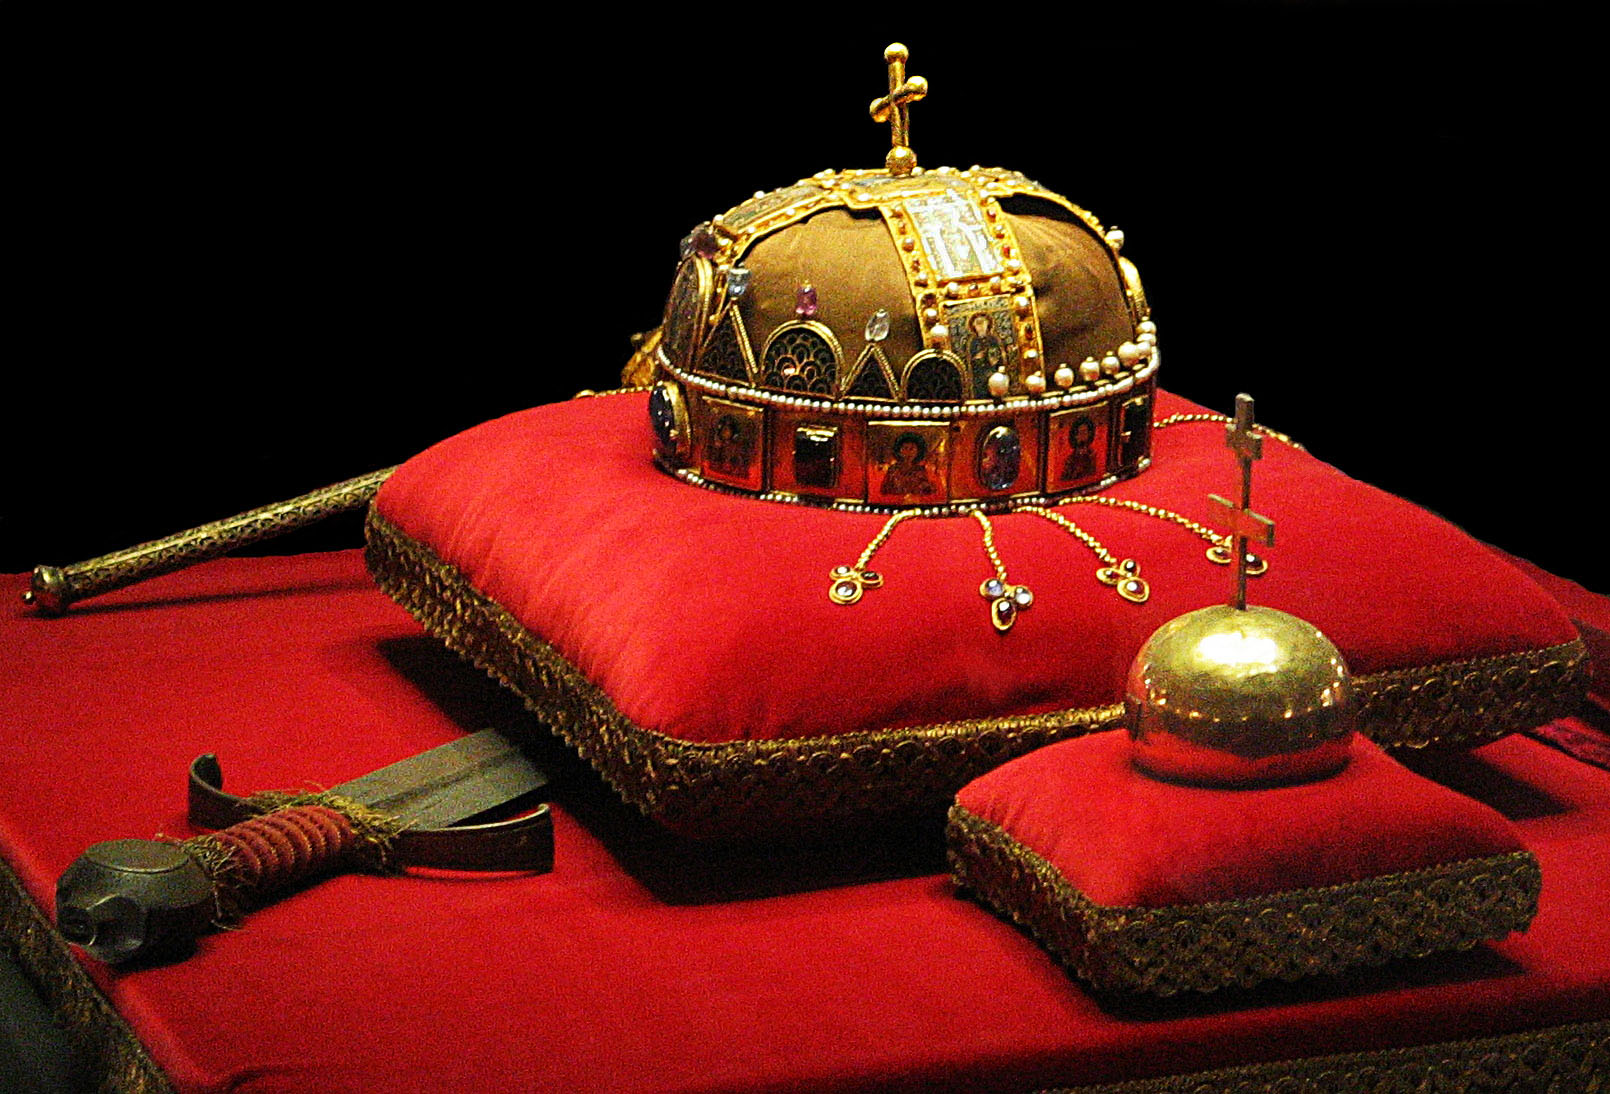 The regalia of the Kingdom of Hungary